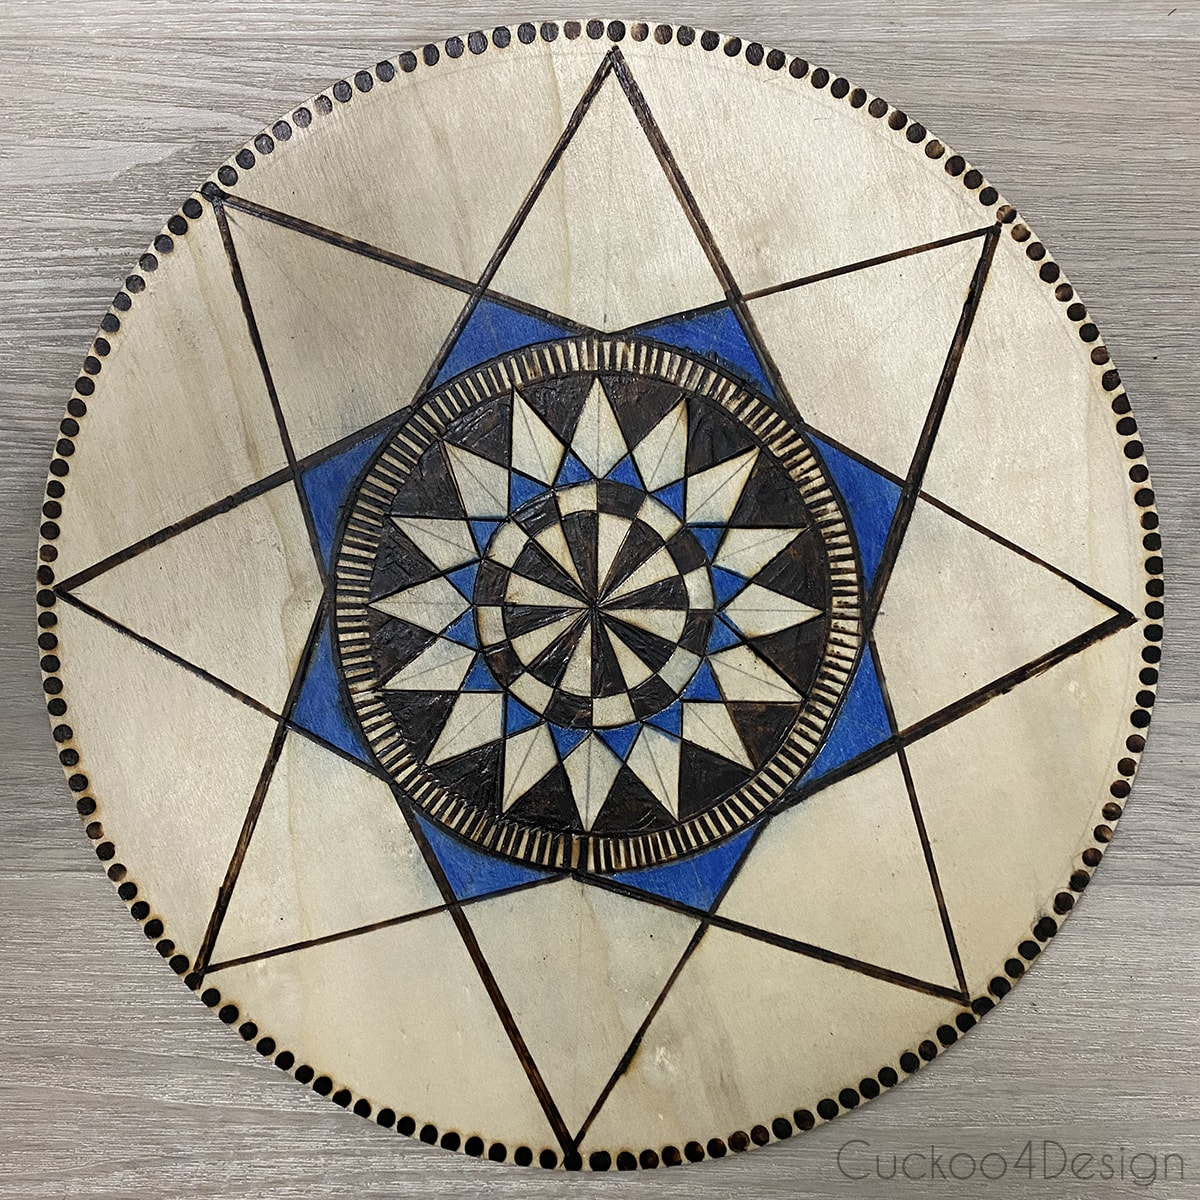 wood burned geometric wall art in Pennsylvania Dutch hex sign style